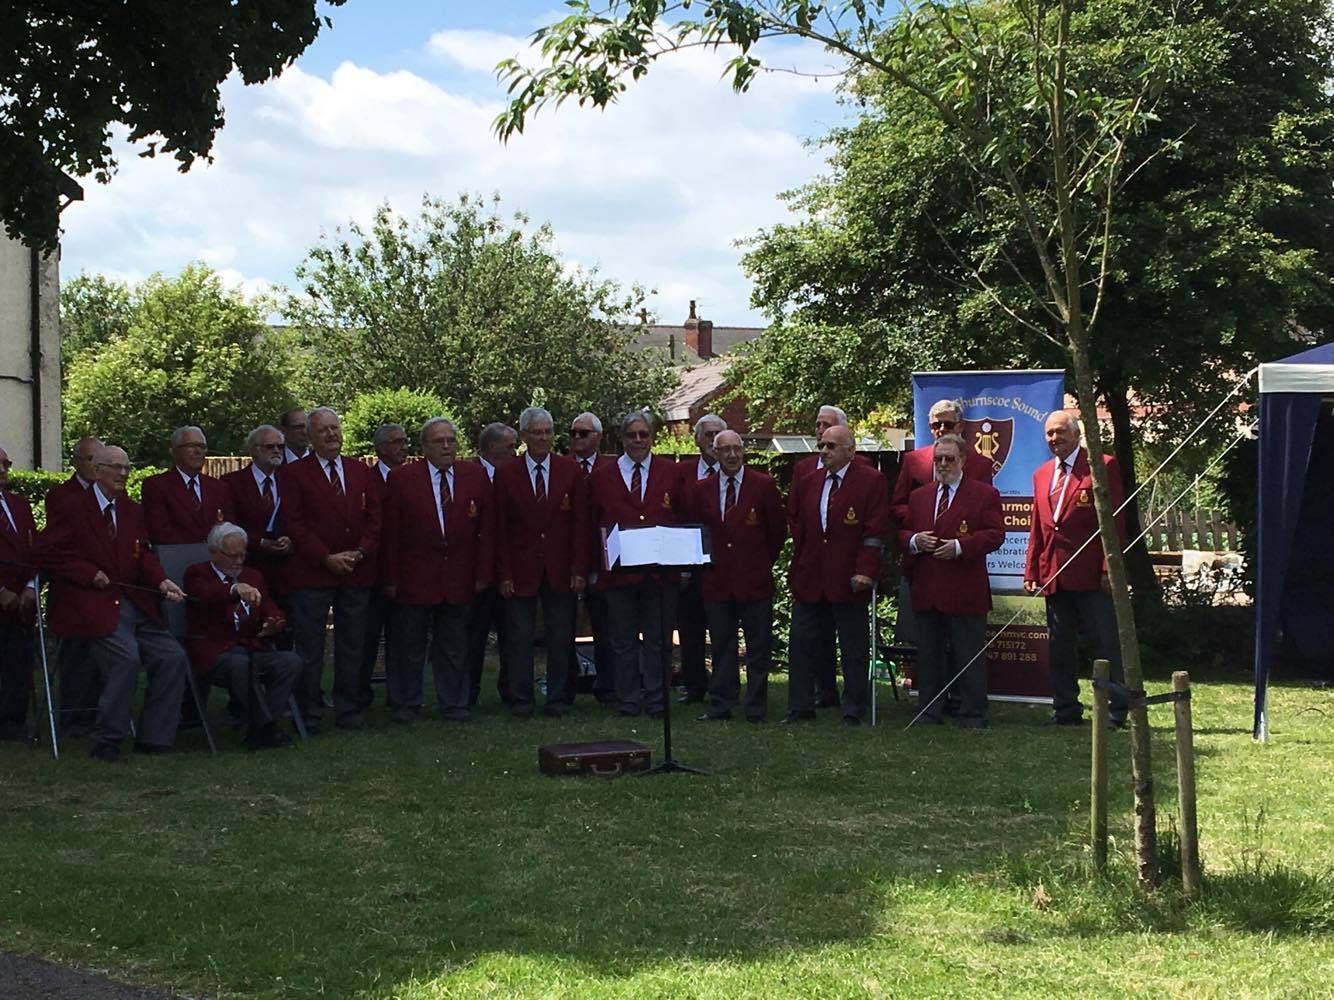 The Great Get Together - Thurnscoe Harmonic Male Voice Choir